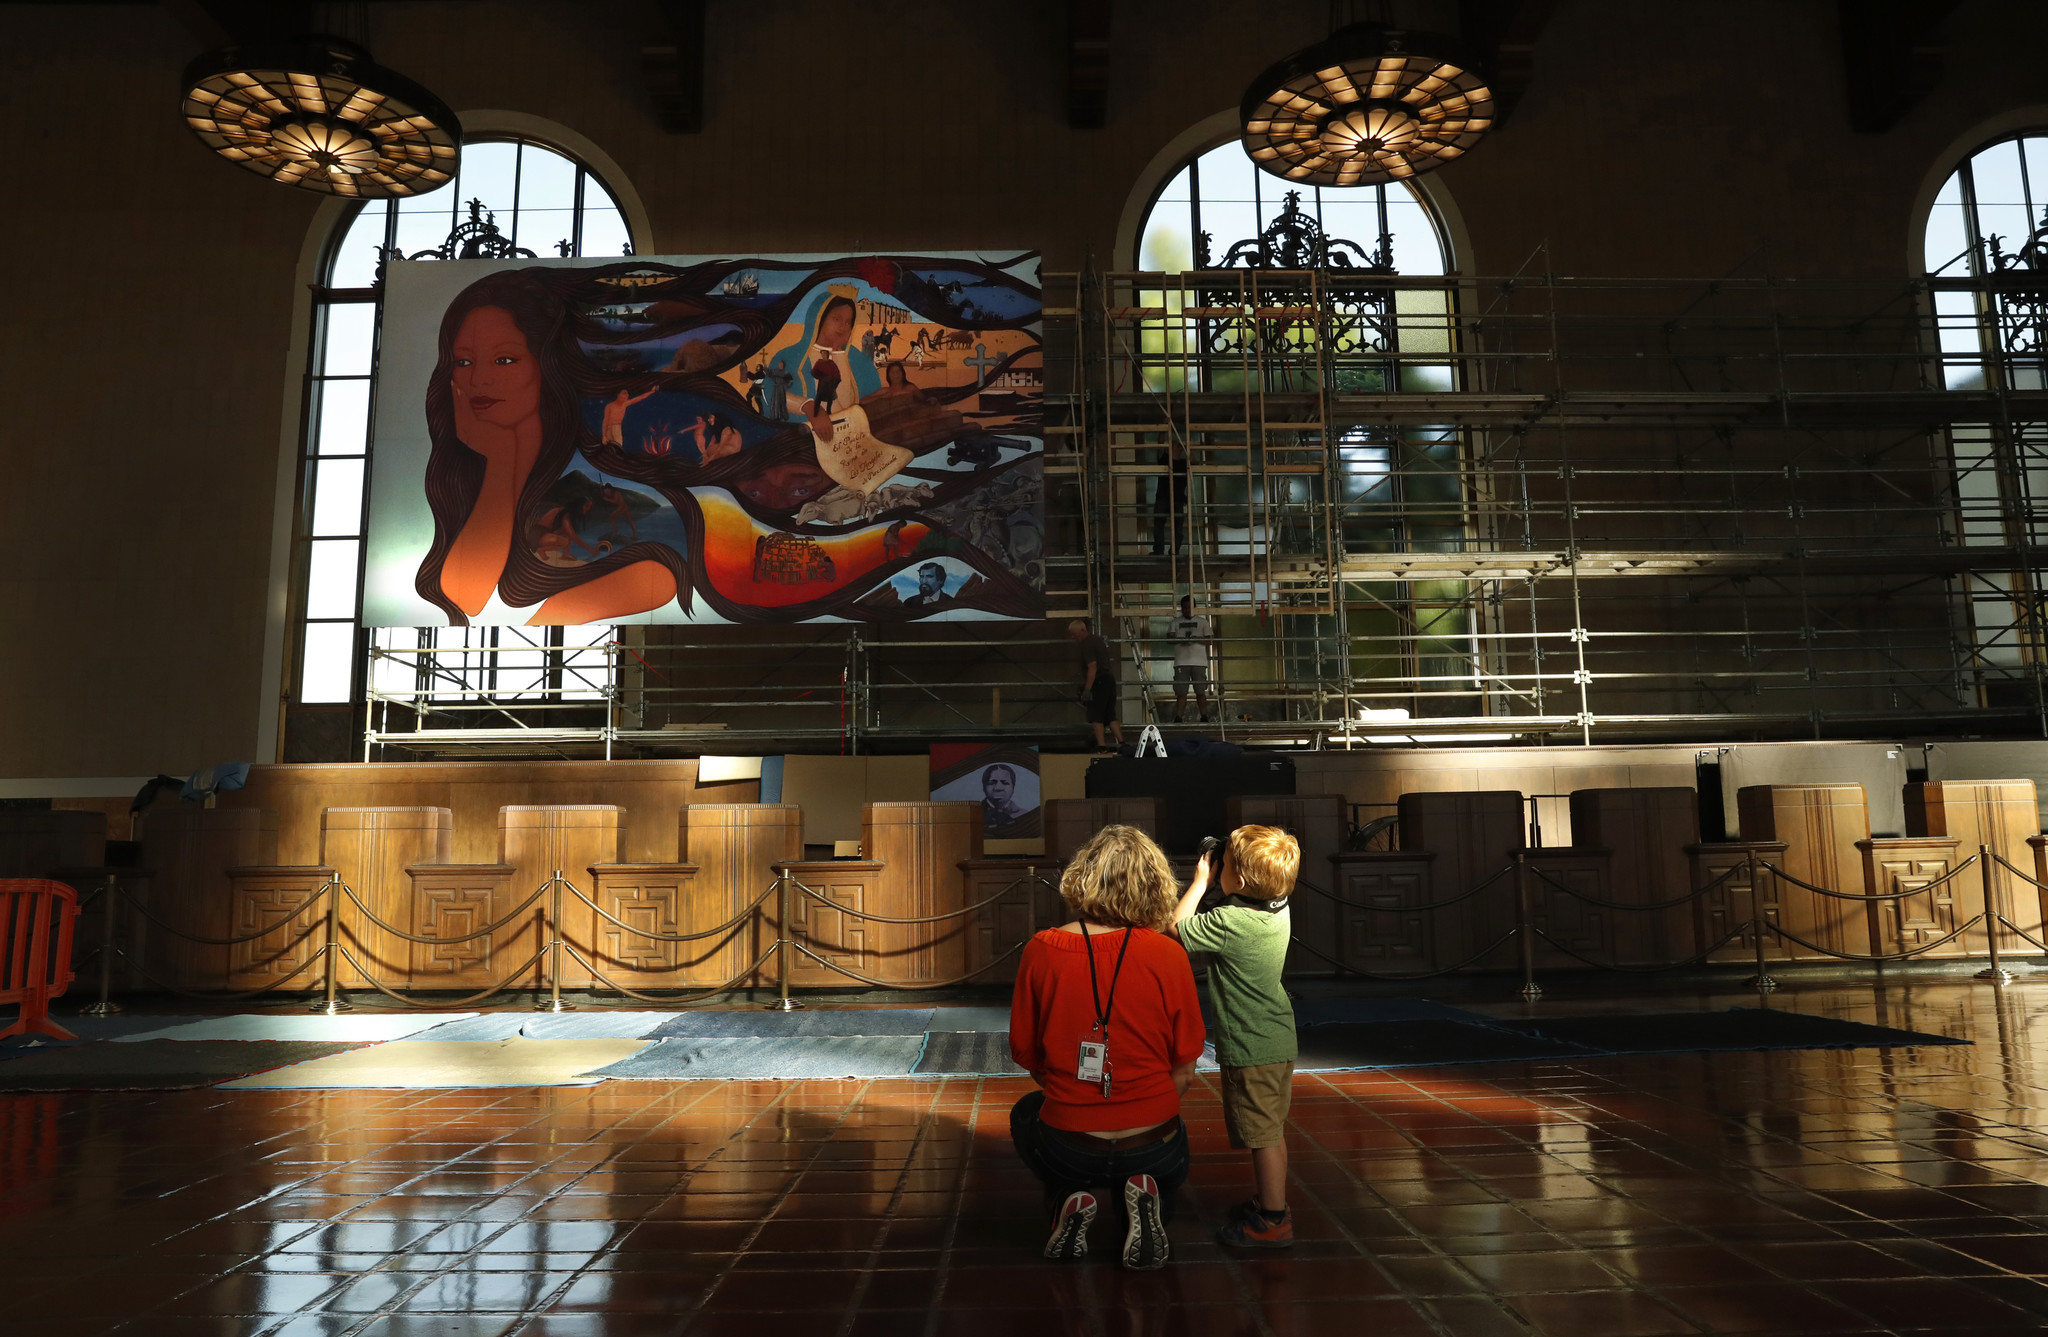 Co-curator Jessica Hough and her son Ansel, 4, pause to take in Barbara Carrasco's mural during its Union Station installation, which is now complete.